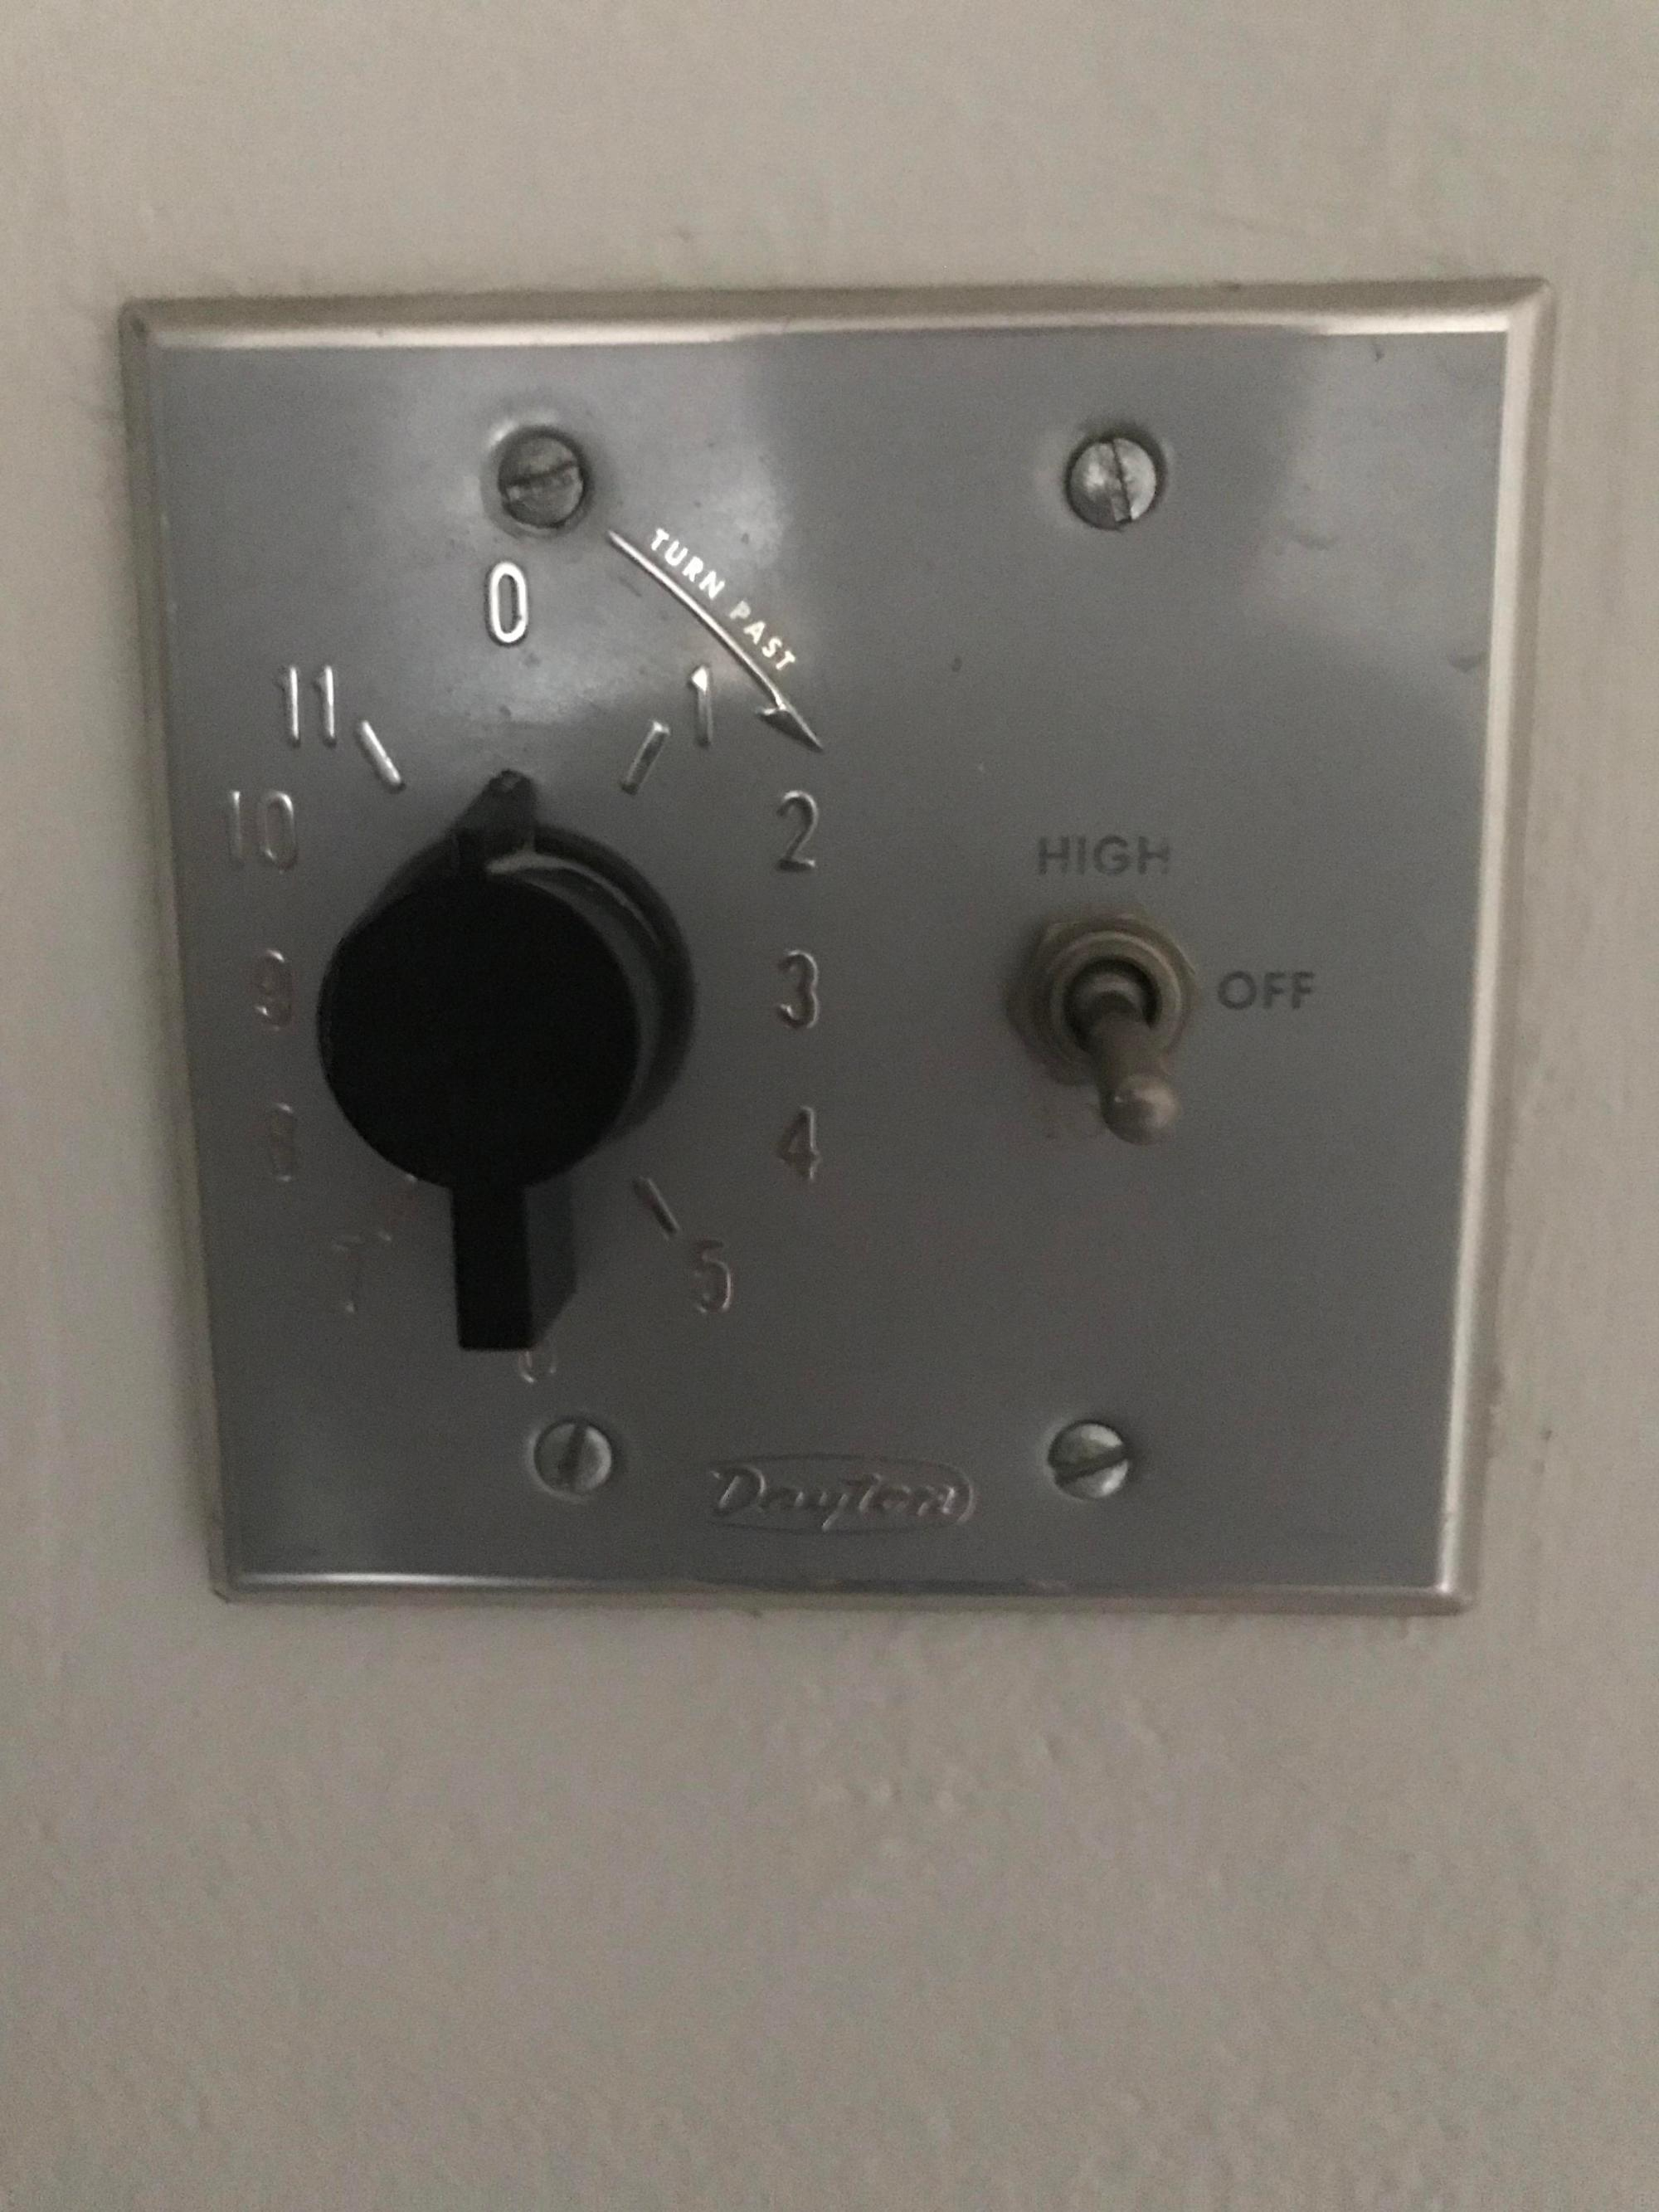 hight resolution of questioncan this whole house fan control switch be replaced with a smart one